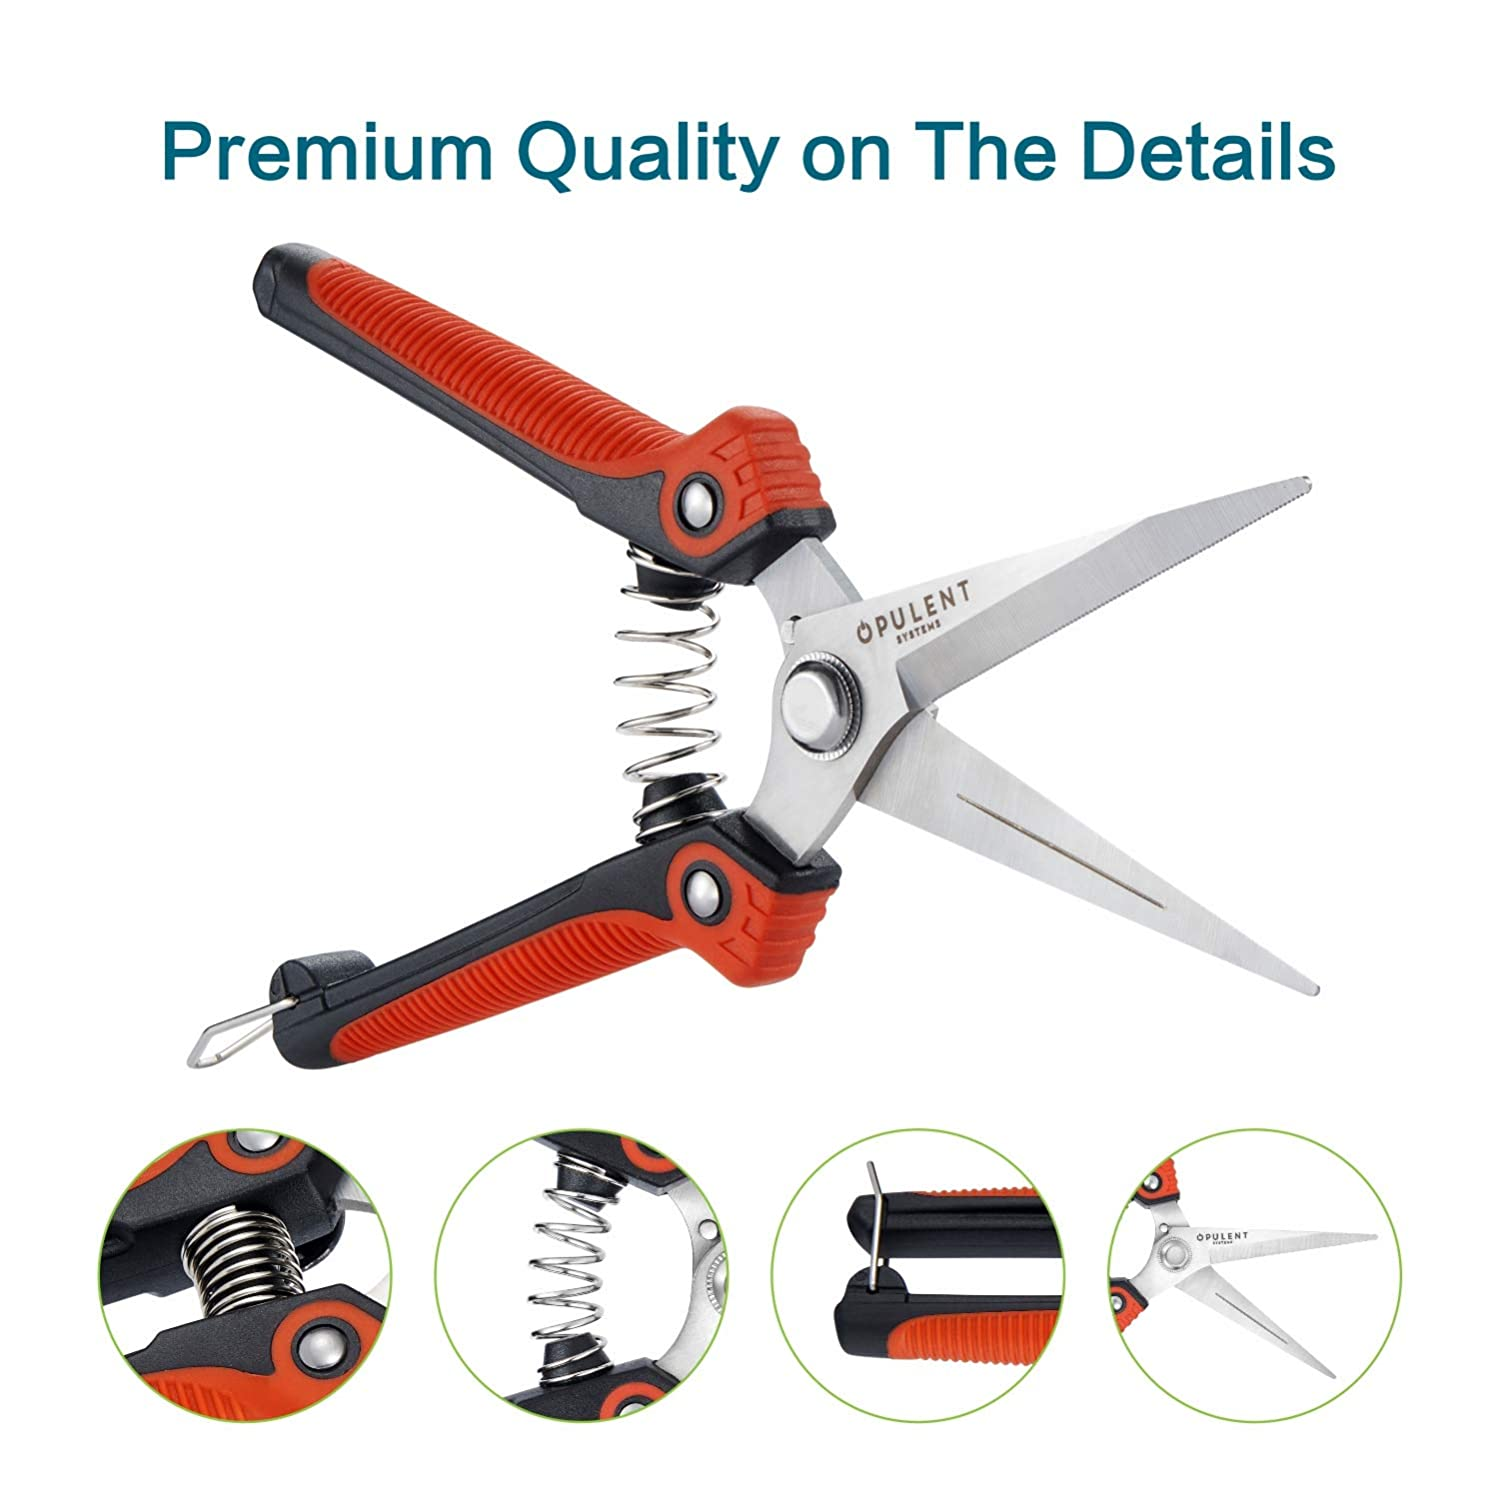 """OPULENT SYSTEMS 2-Pack Professional Pruning Shears Set 8/"""" Handing Pruner with Steel Straight Blade and 7/"""" Bypass Sharp Steel Blade Garden Shears"""